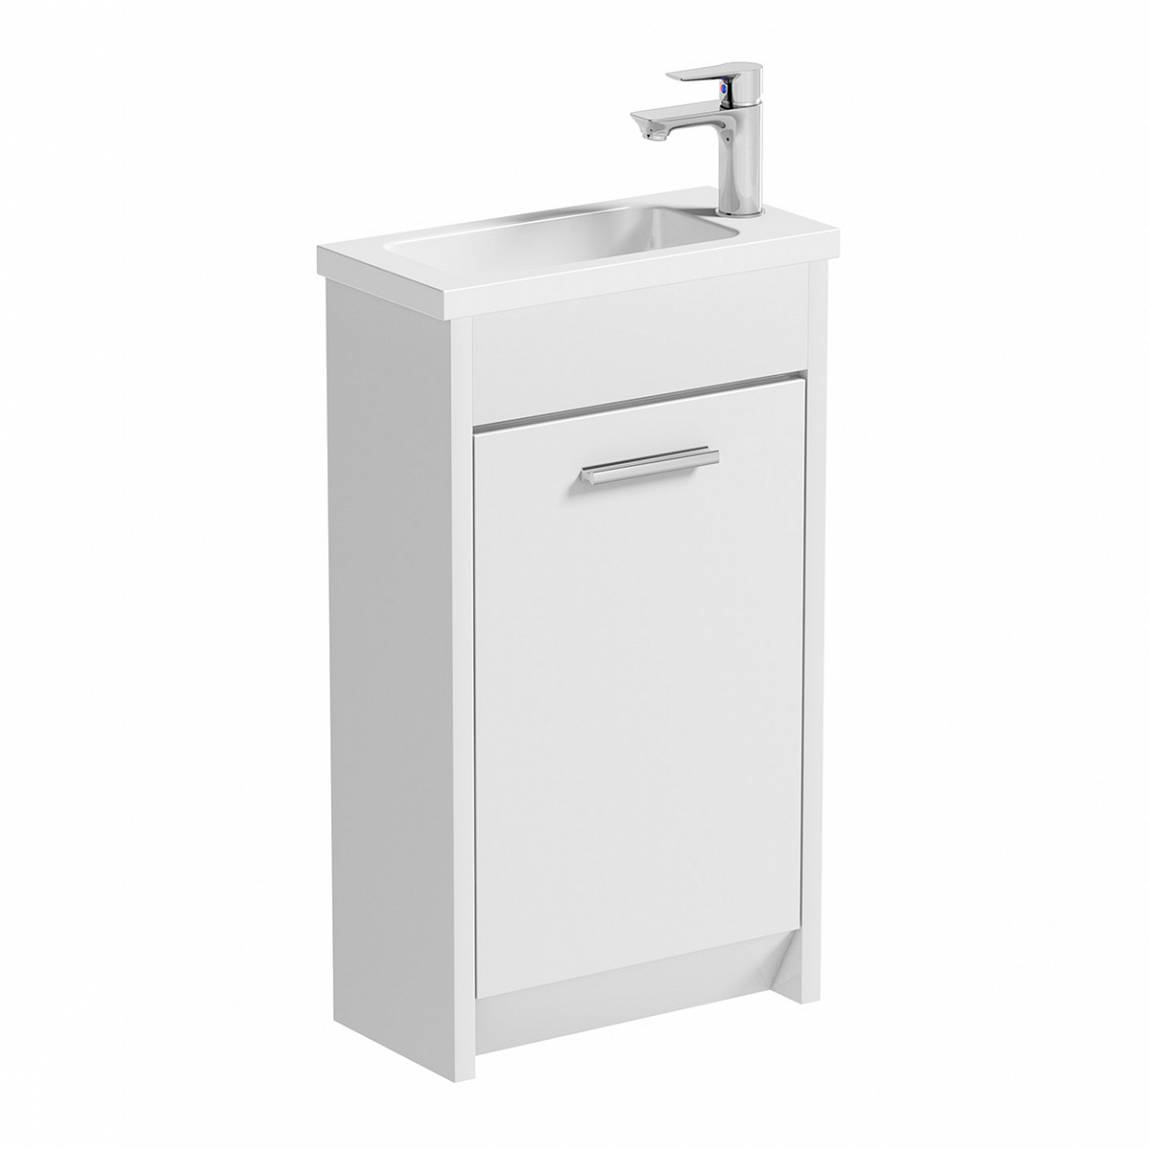 Image of Smart White Compact Unit & Basin